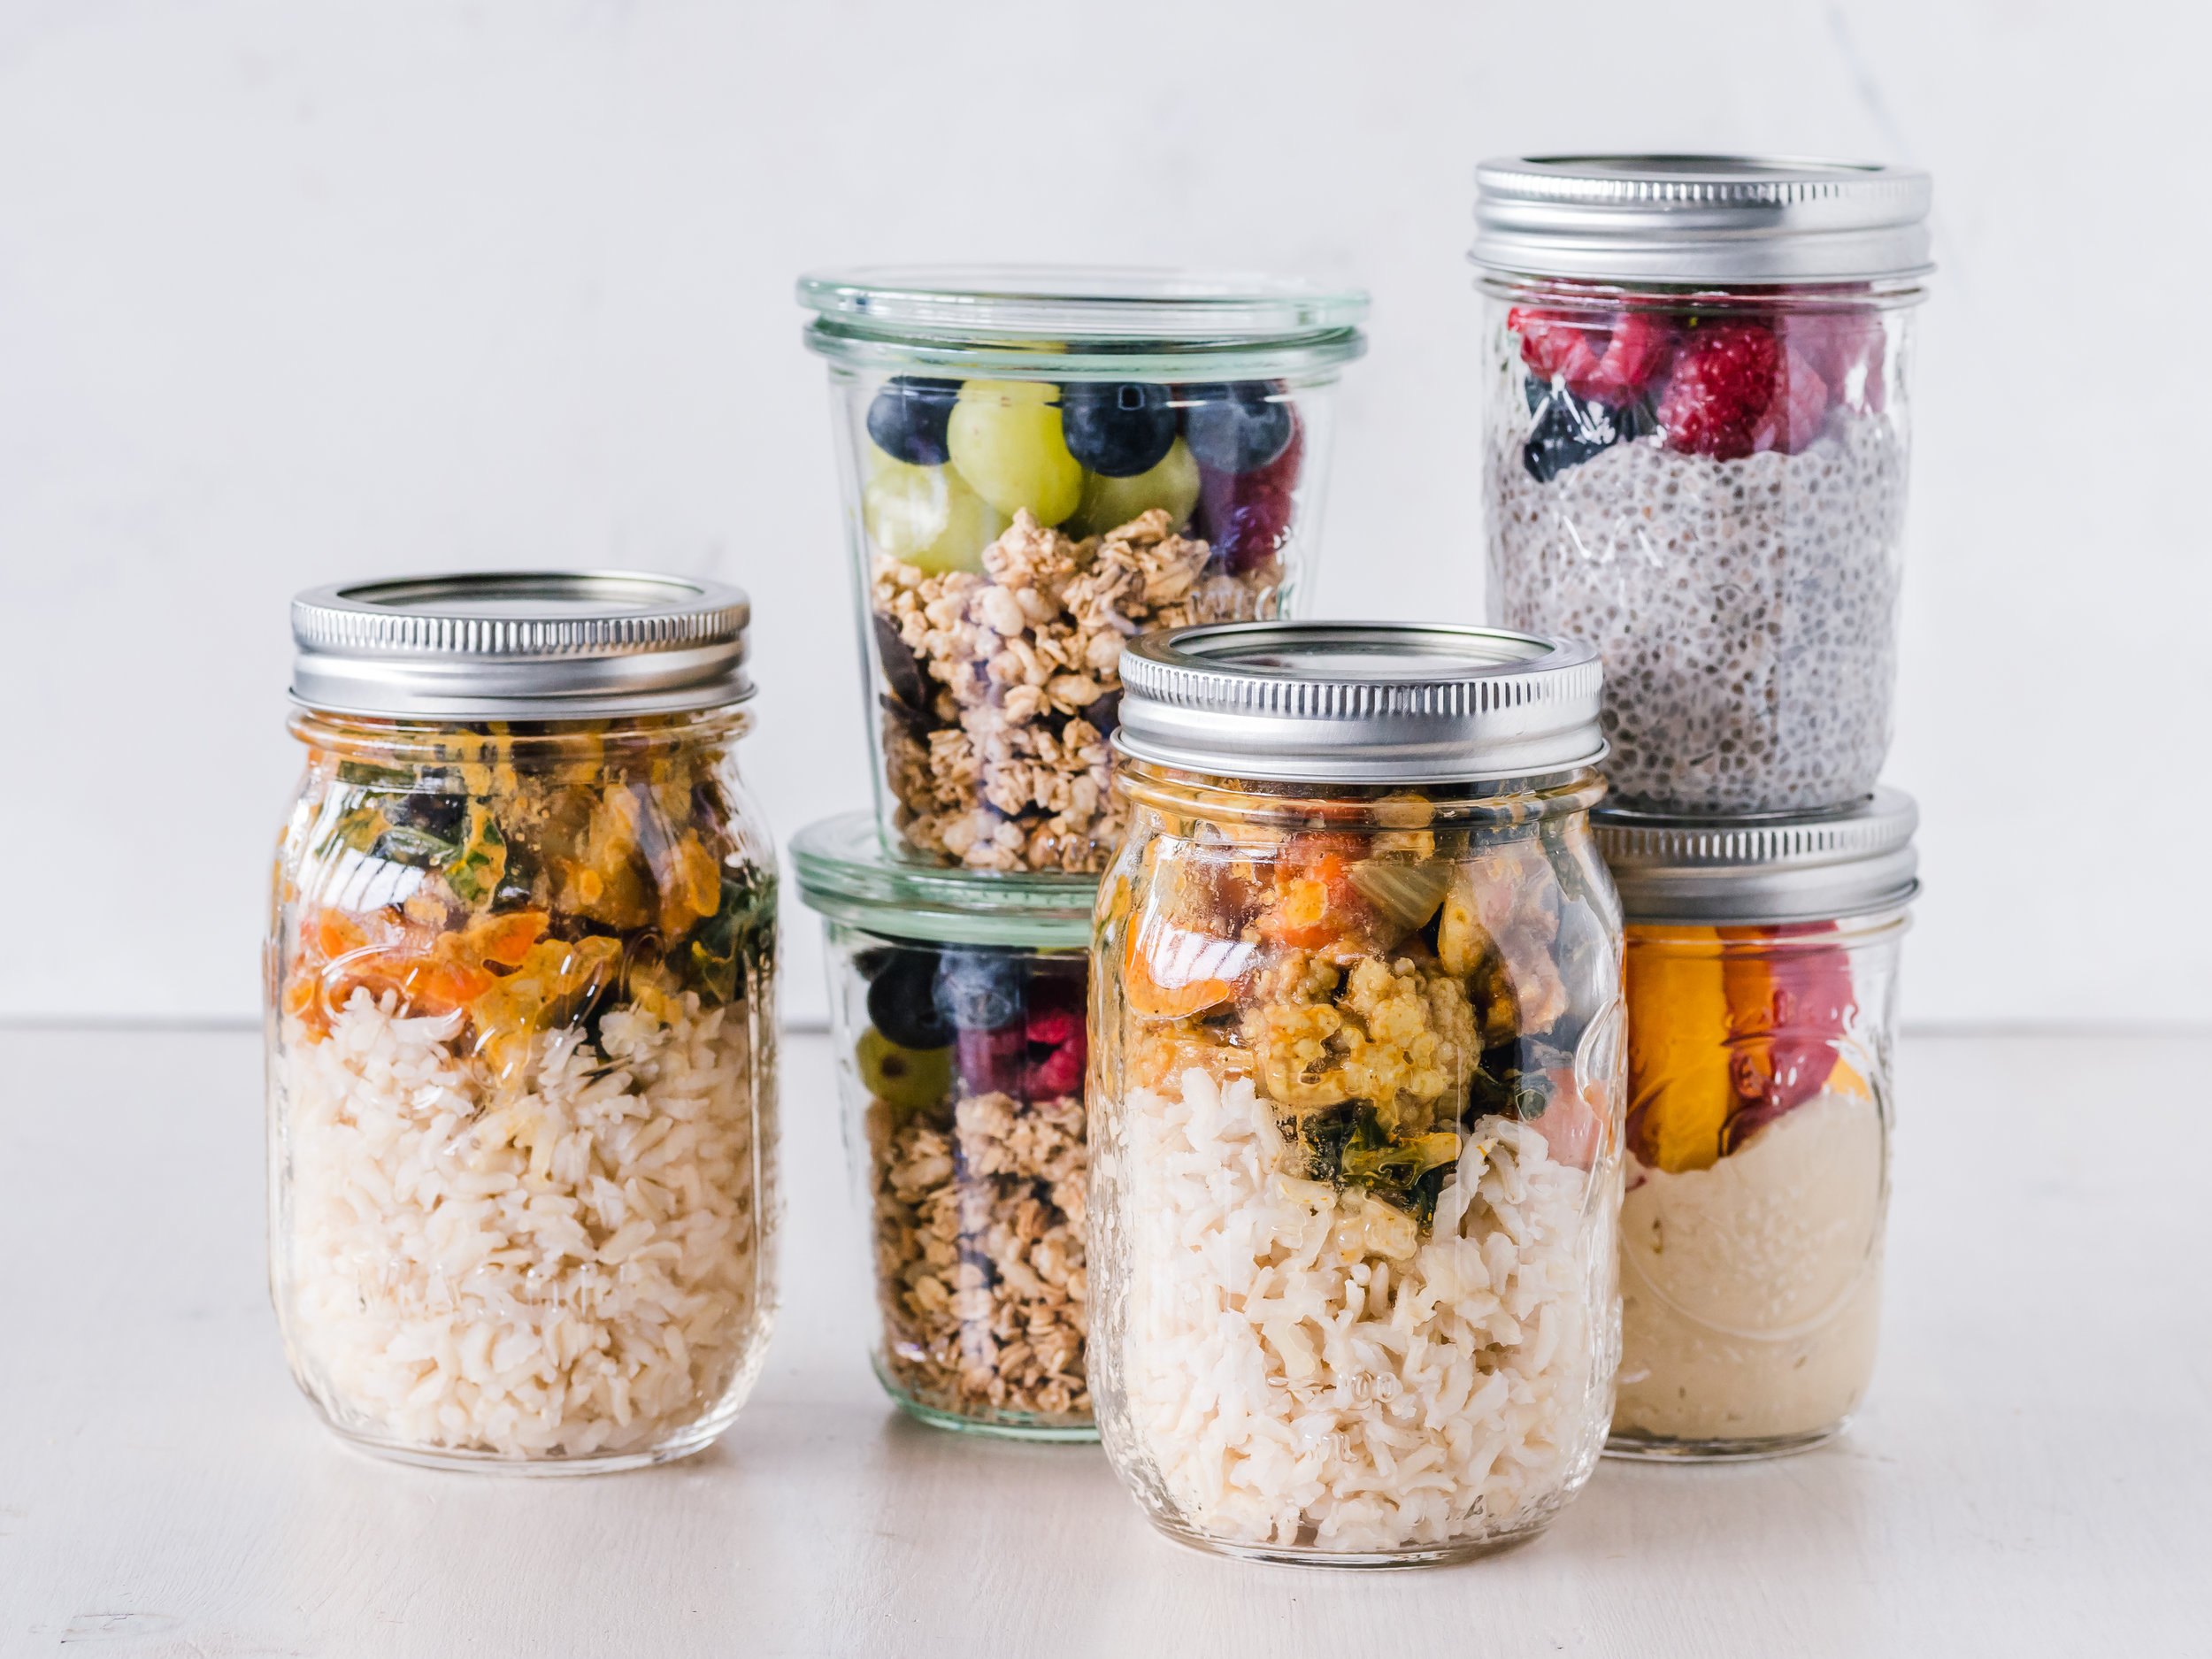 Week 3Easy Meal Planning - Ready to save time and money? Meal planning is the key to both and it doesn't need to be hard. Get ready to break out your mason jars and prepare yourself healthy meals and snacks.